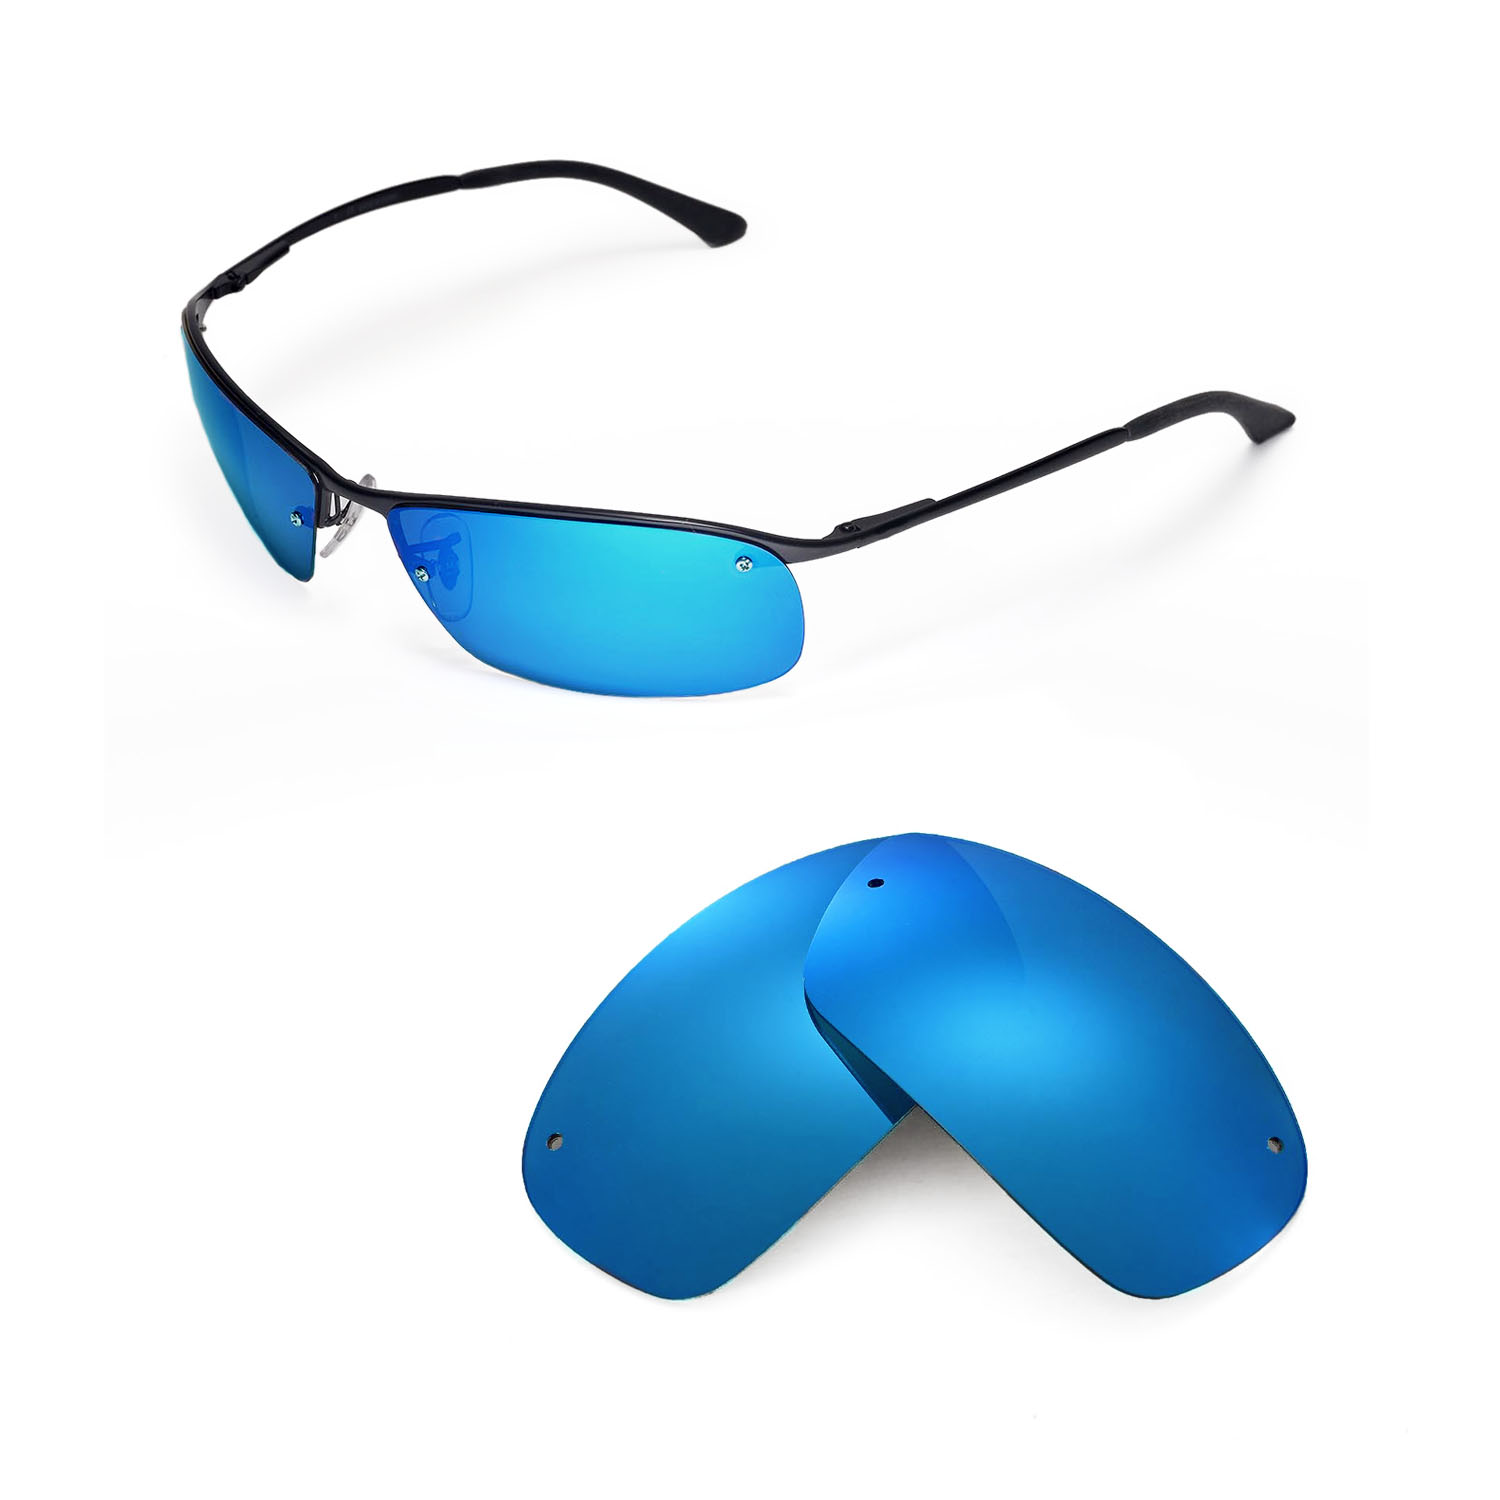 11d22aee39 Details about New Walleva Polarized Ice Blue Replacement For Ray-Ban RB3183  63mm